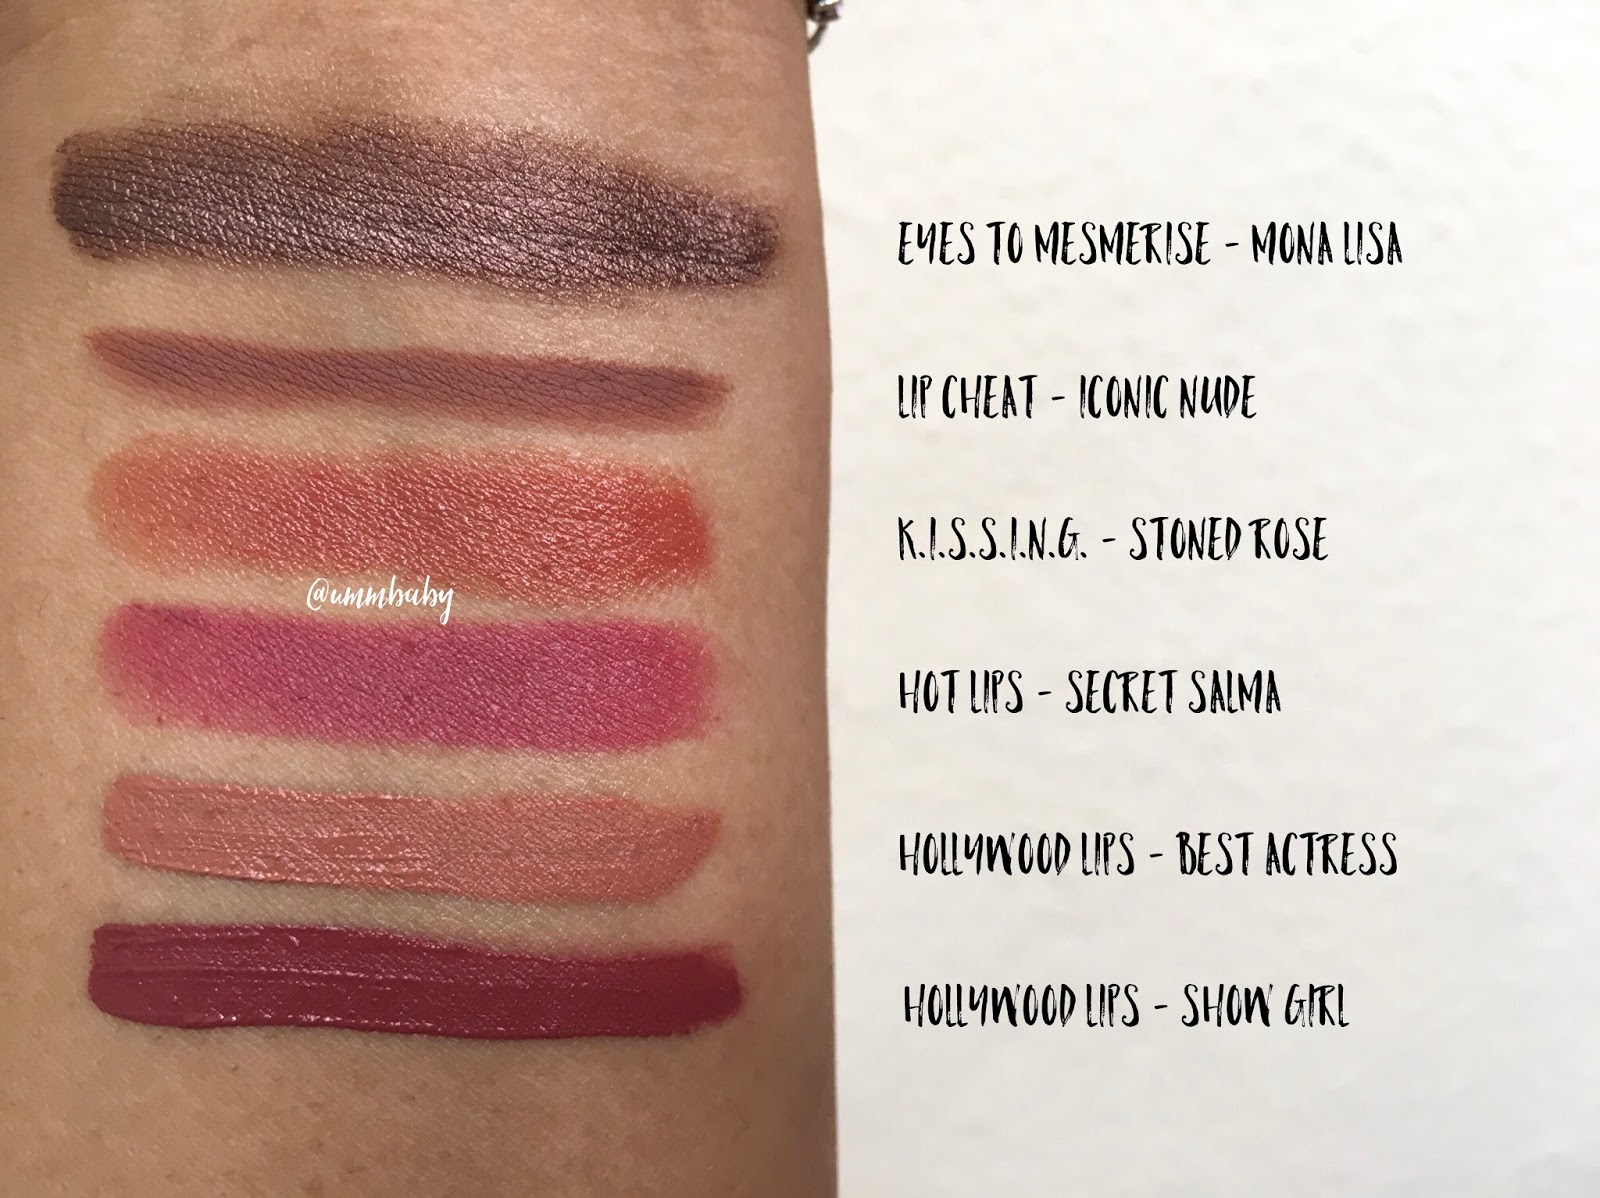 nc40 swatches charlotte tilbury hollywood lips show girl, best actress swatch, nc40 medium skin swatch charlotte tilbury eyes to mesmerise mona lisa